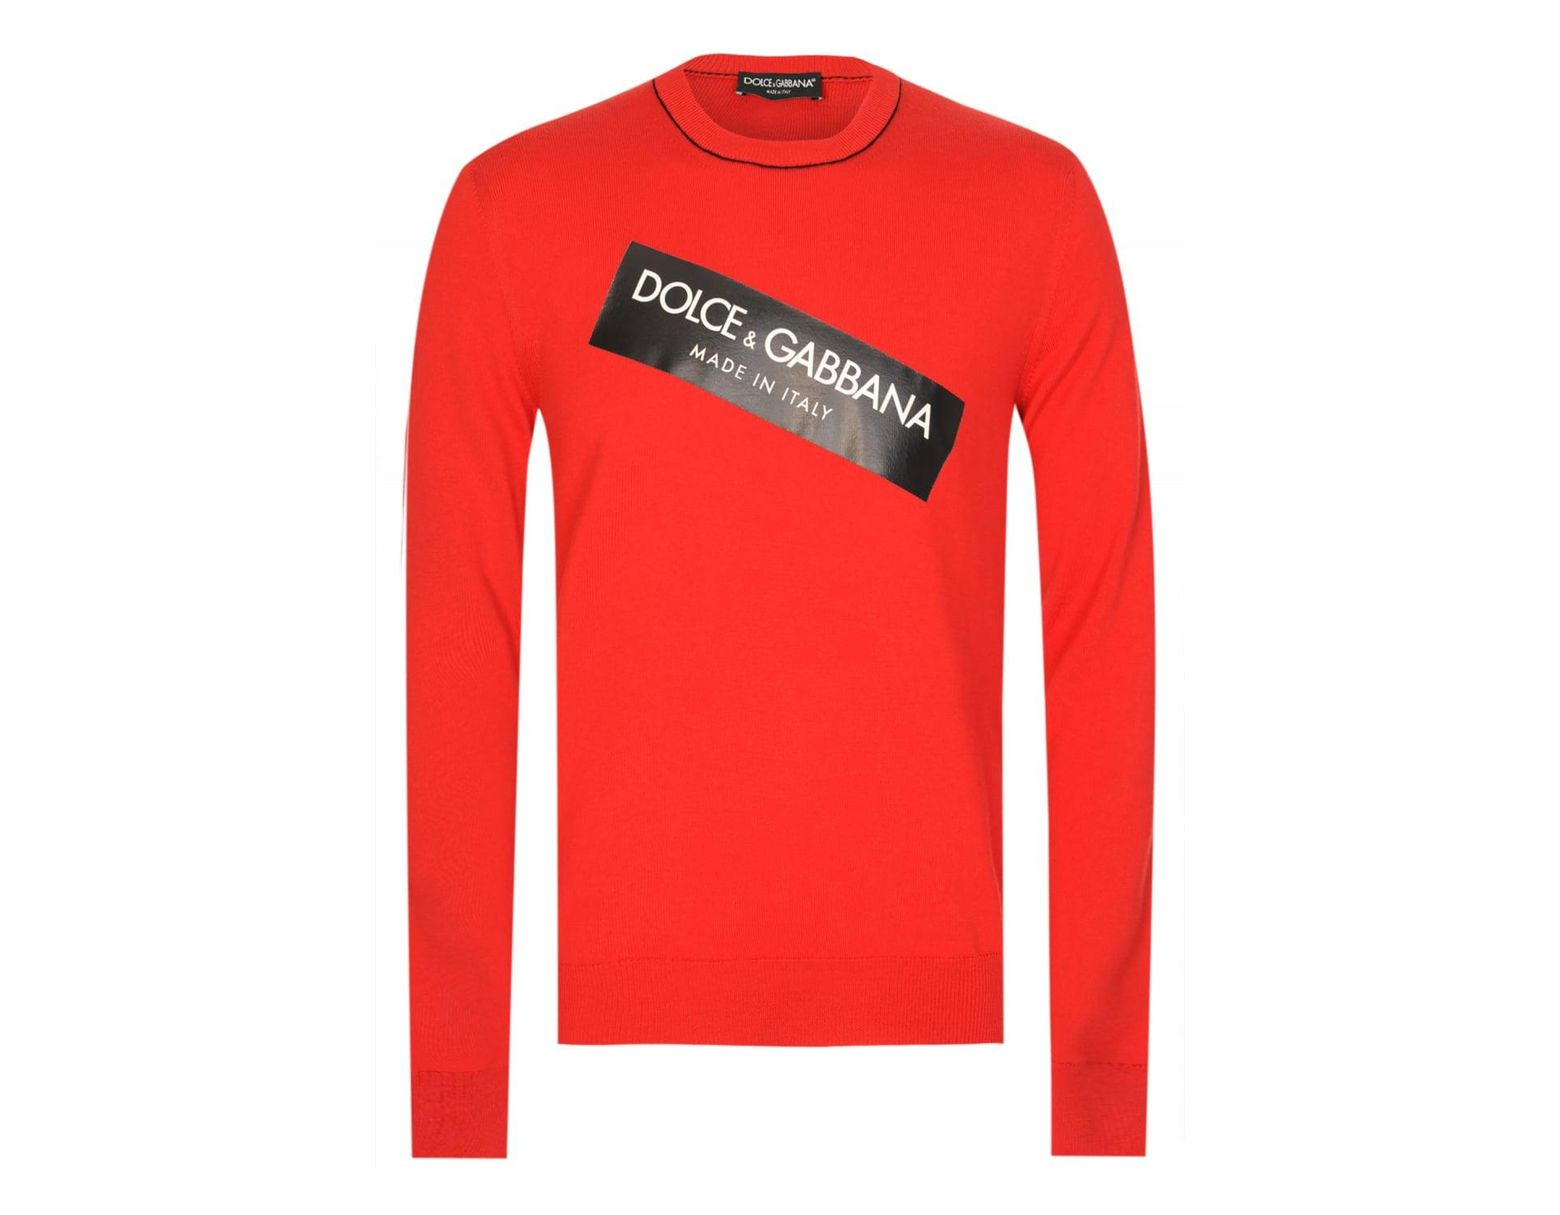 236d5b7b Dolce & Gabbana Slant Chest Logo Sweatshirt in Red for Men - Lyst